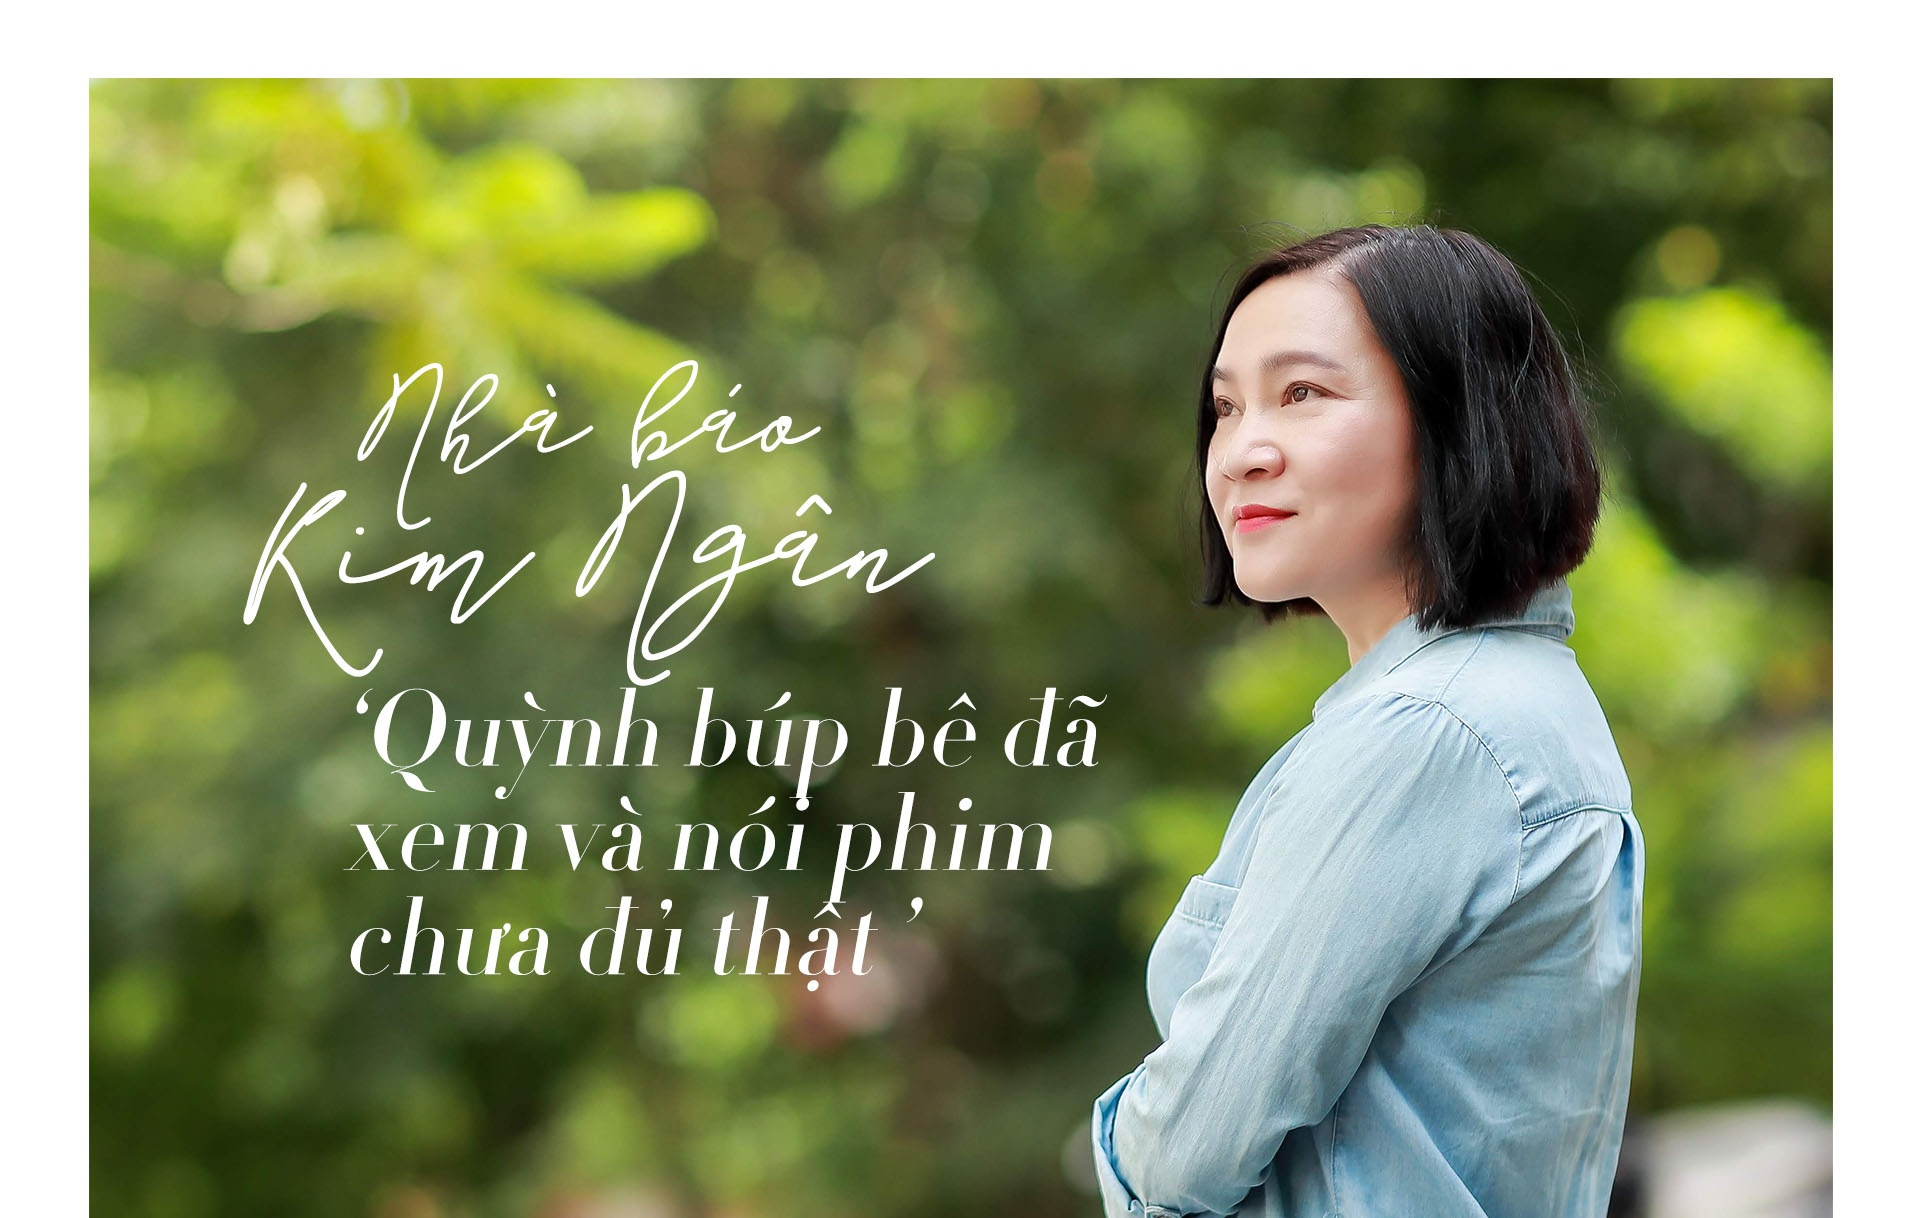 bien kich Quynh bup be noi ve do vo hon nhan anh 2